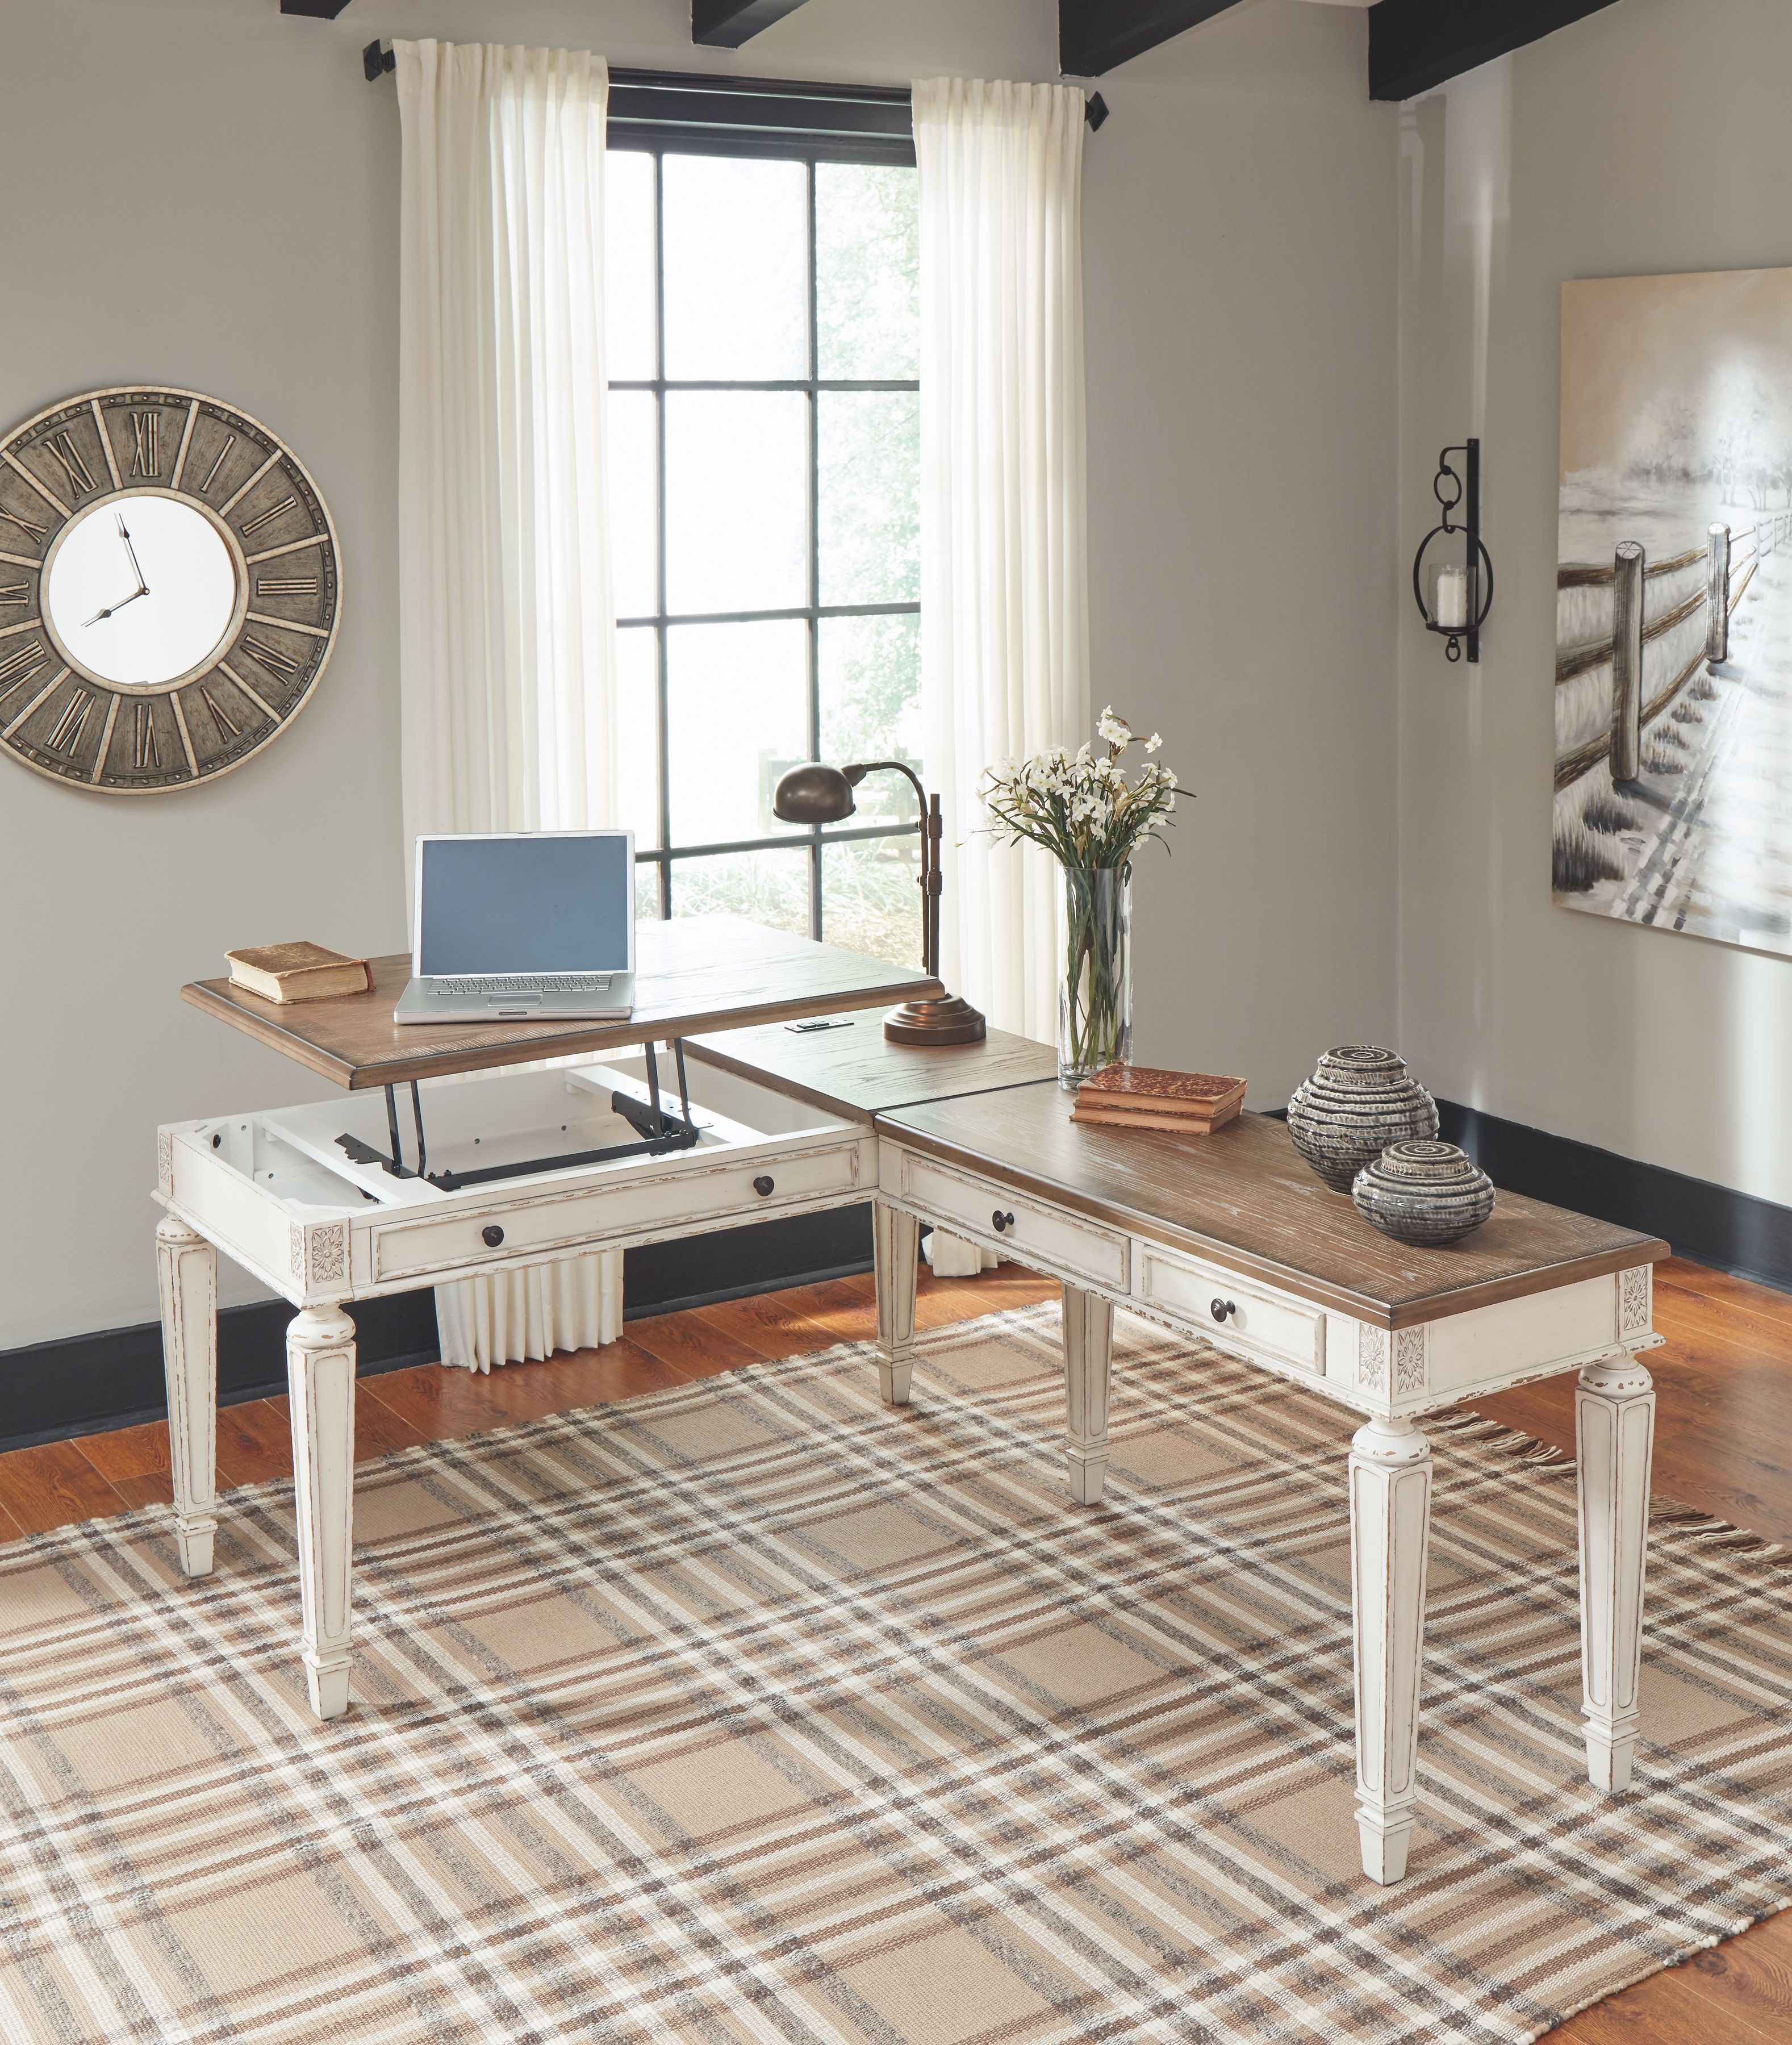 Realyn Home Office Lift Top Desk Ashley Furniture Homestore In 2021 Home Home Office Design Home Office Space